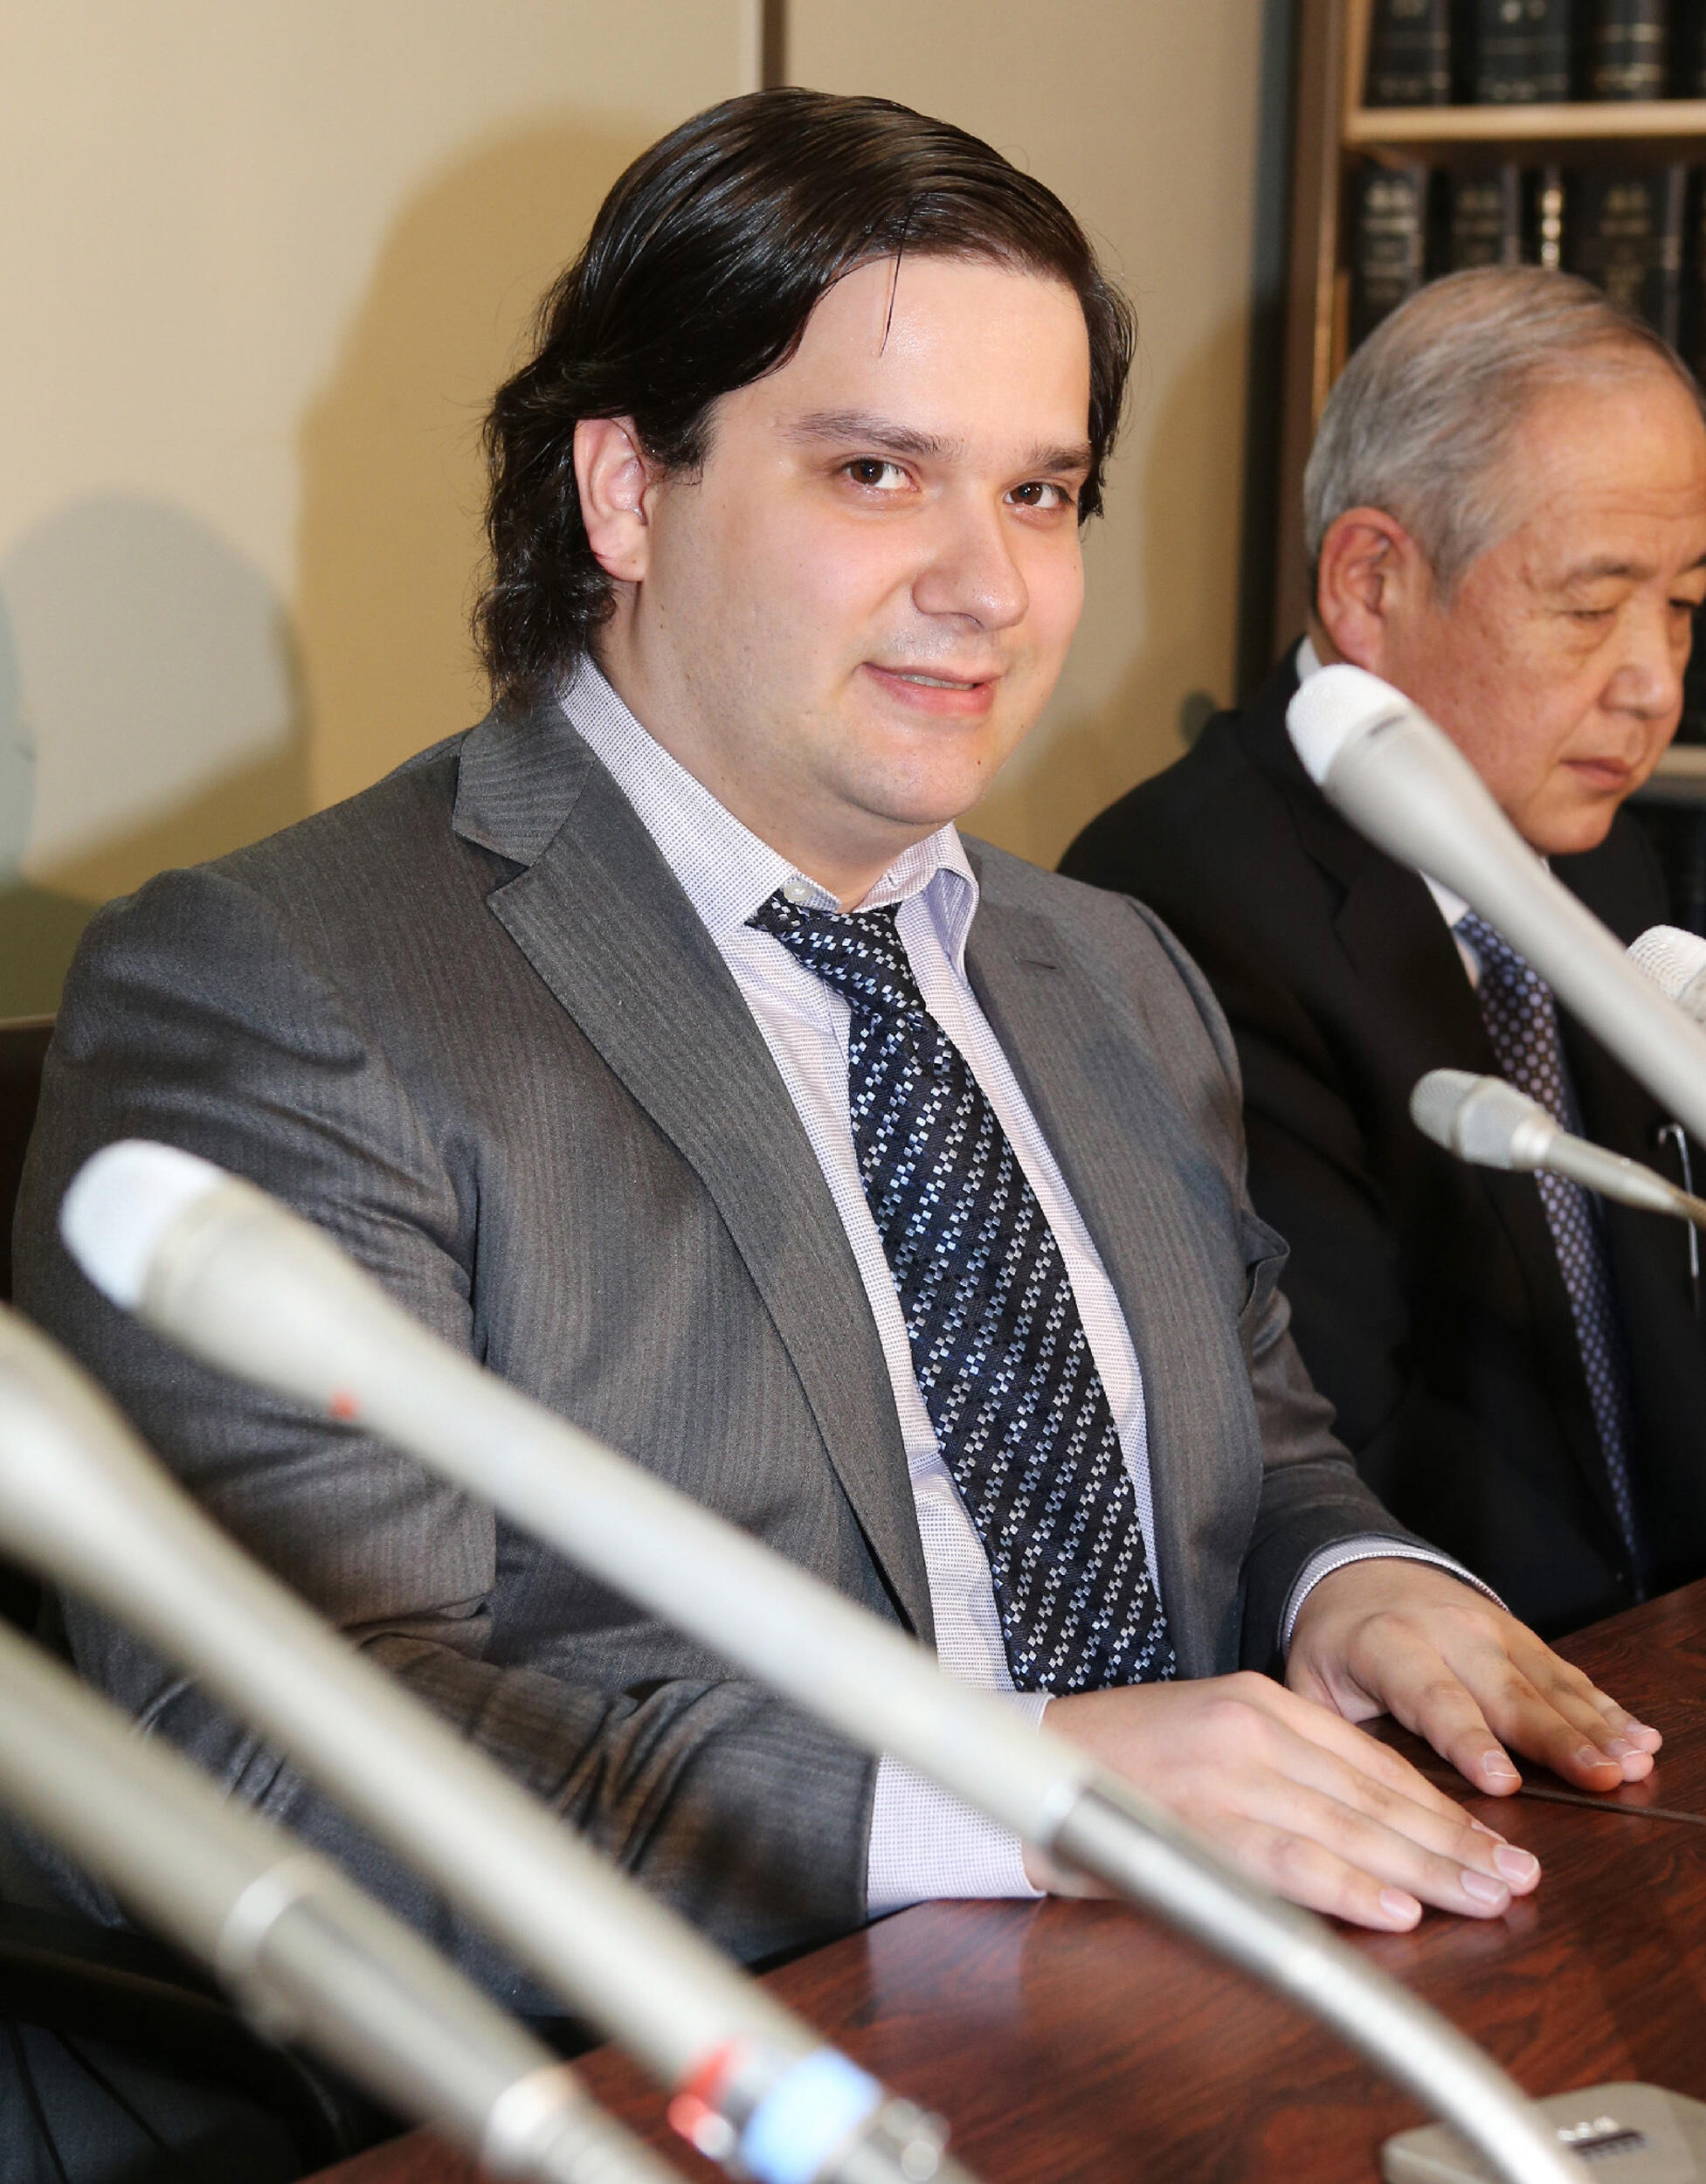 Mark Karpèles, former head of Tokyo-based MtGox, is being held and questioned by Japanese authorities